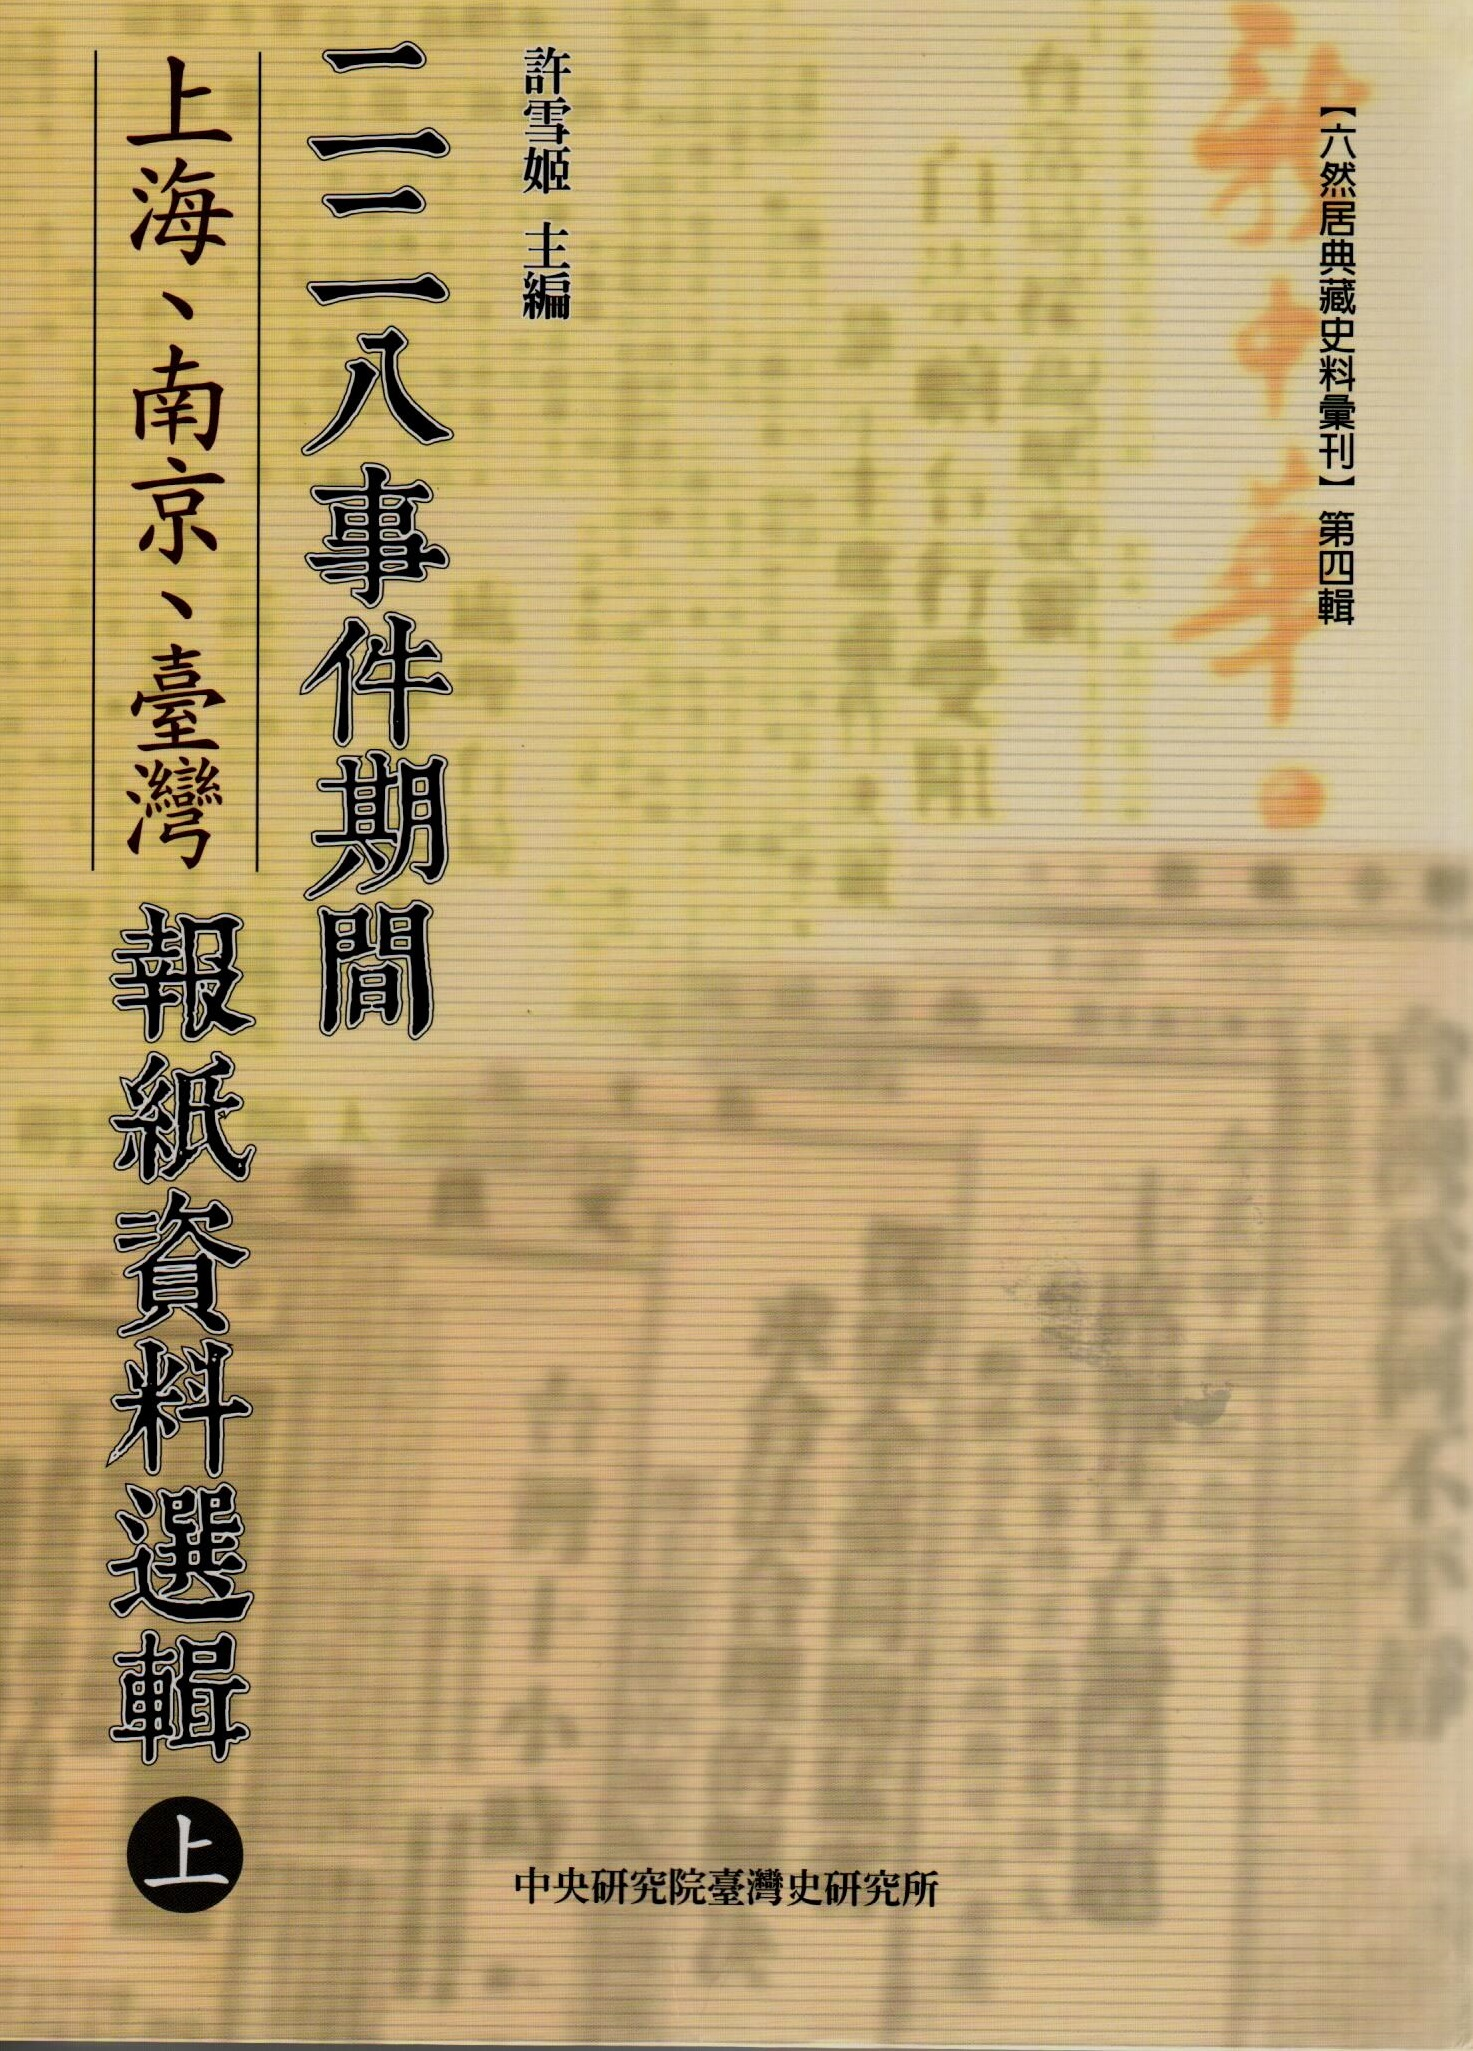 Selected Newspaper Sources on the 228 Incident(Shanghai, Nanking, Taiwan)